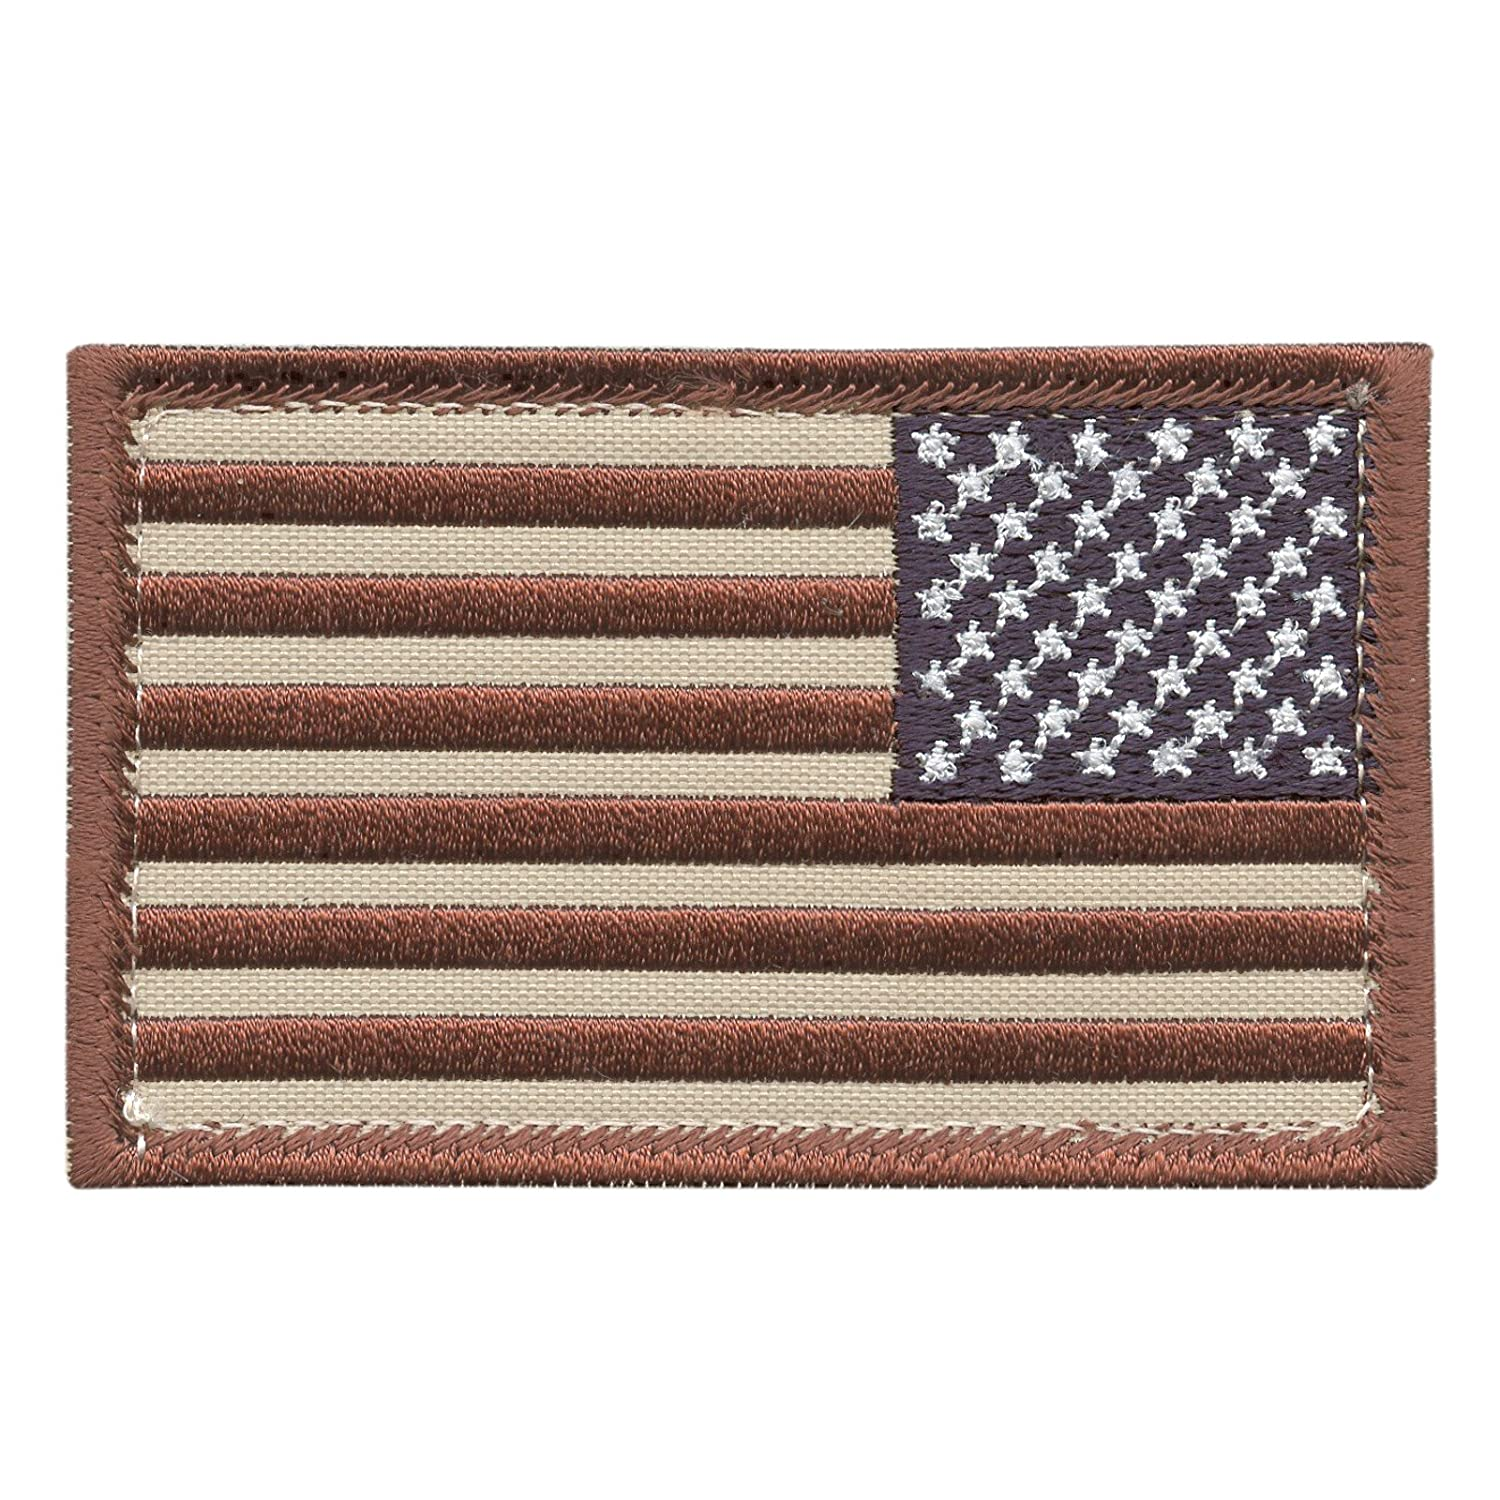 Desert USA American Reversed Flag AOR1 ISAF Morale Tactical Touch Fastener Patch 2AFTER1 P.1416.1.V